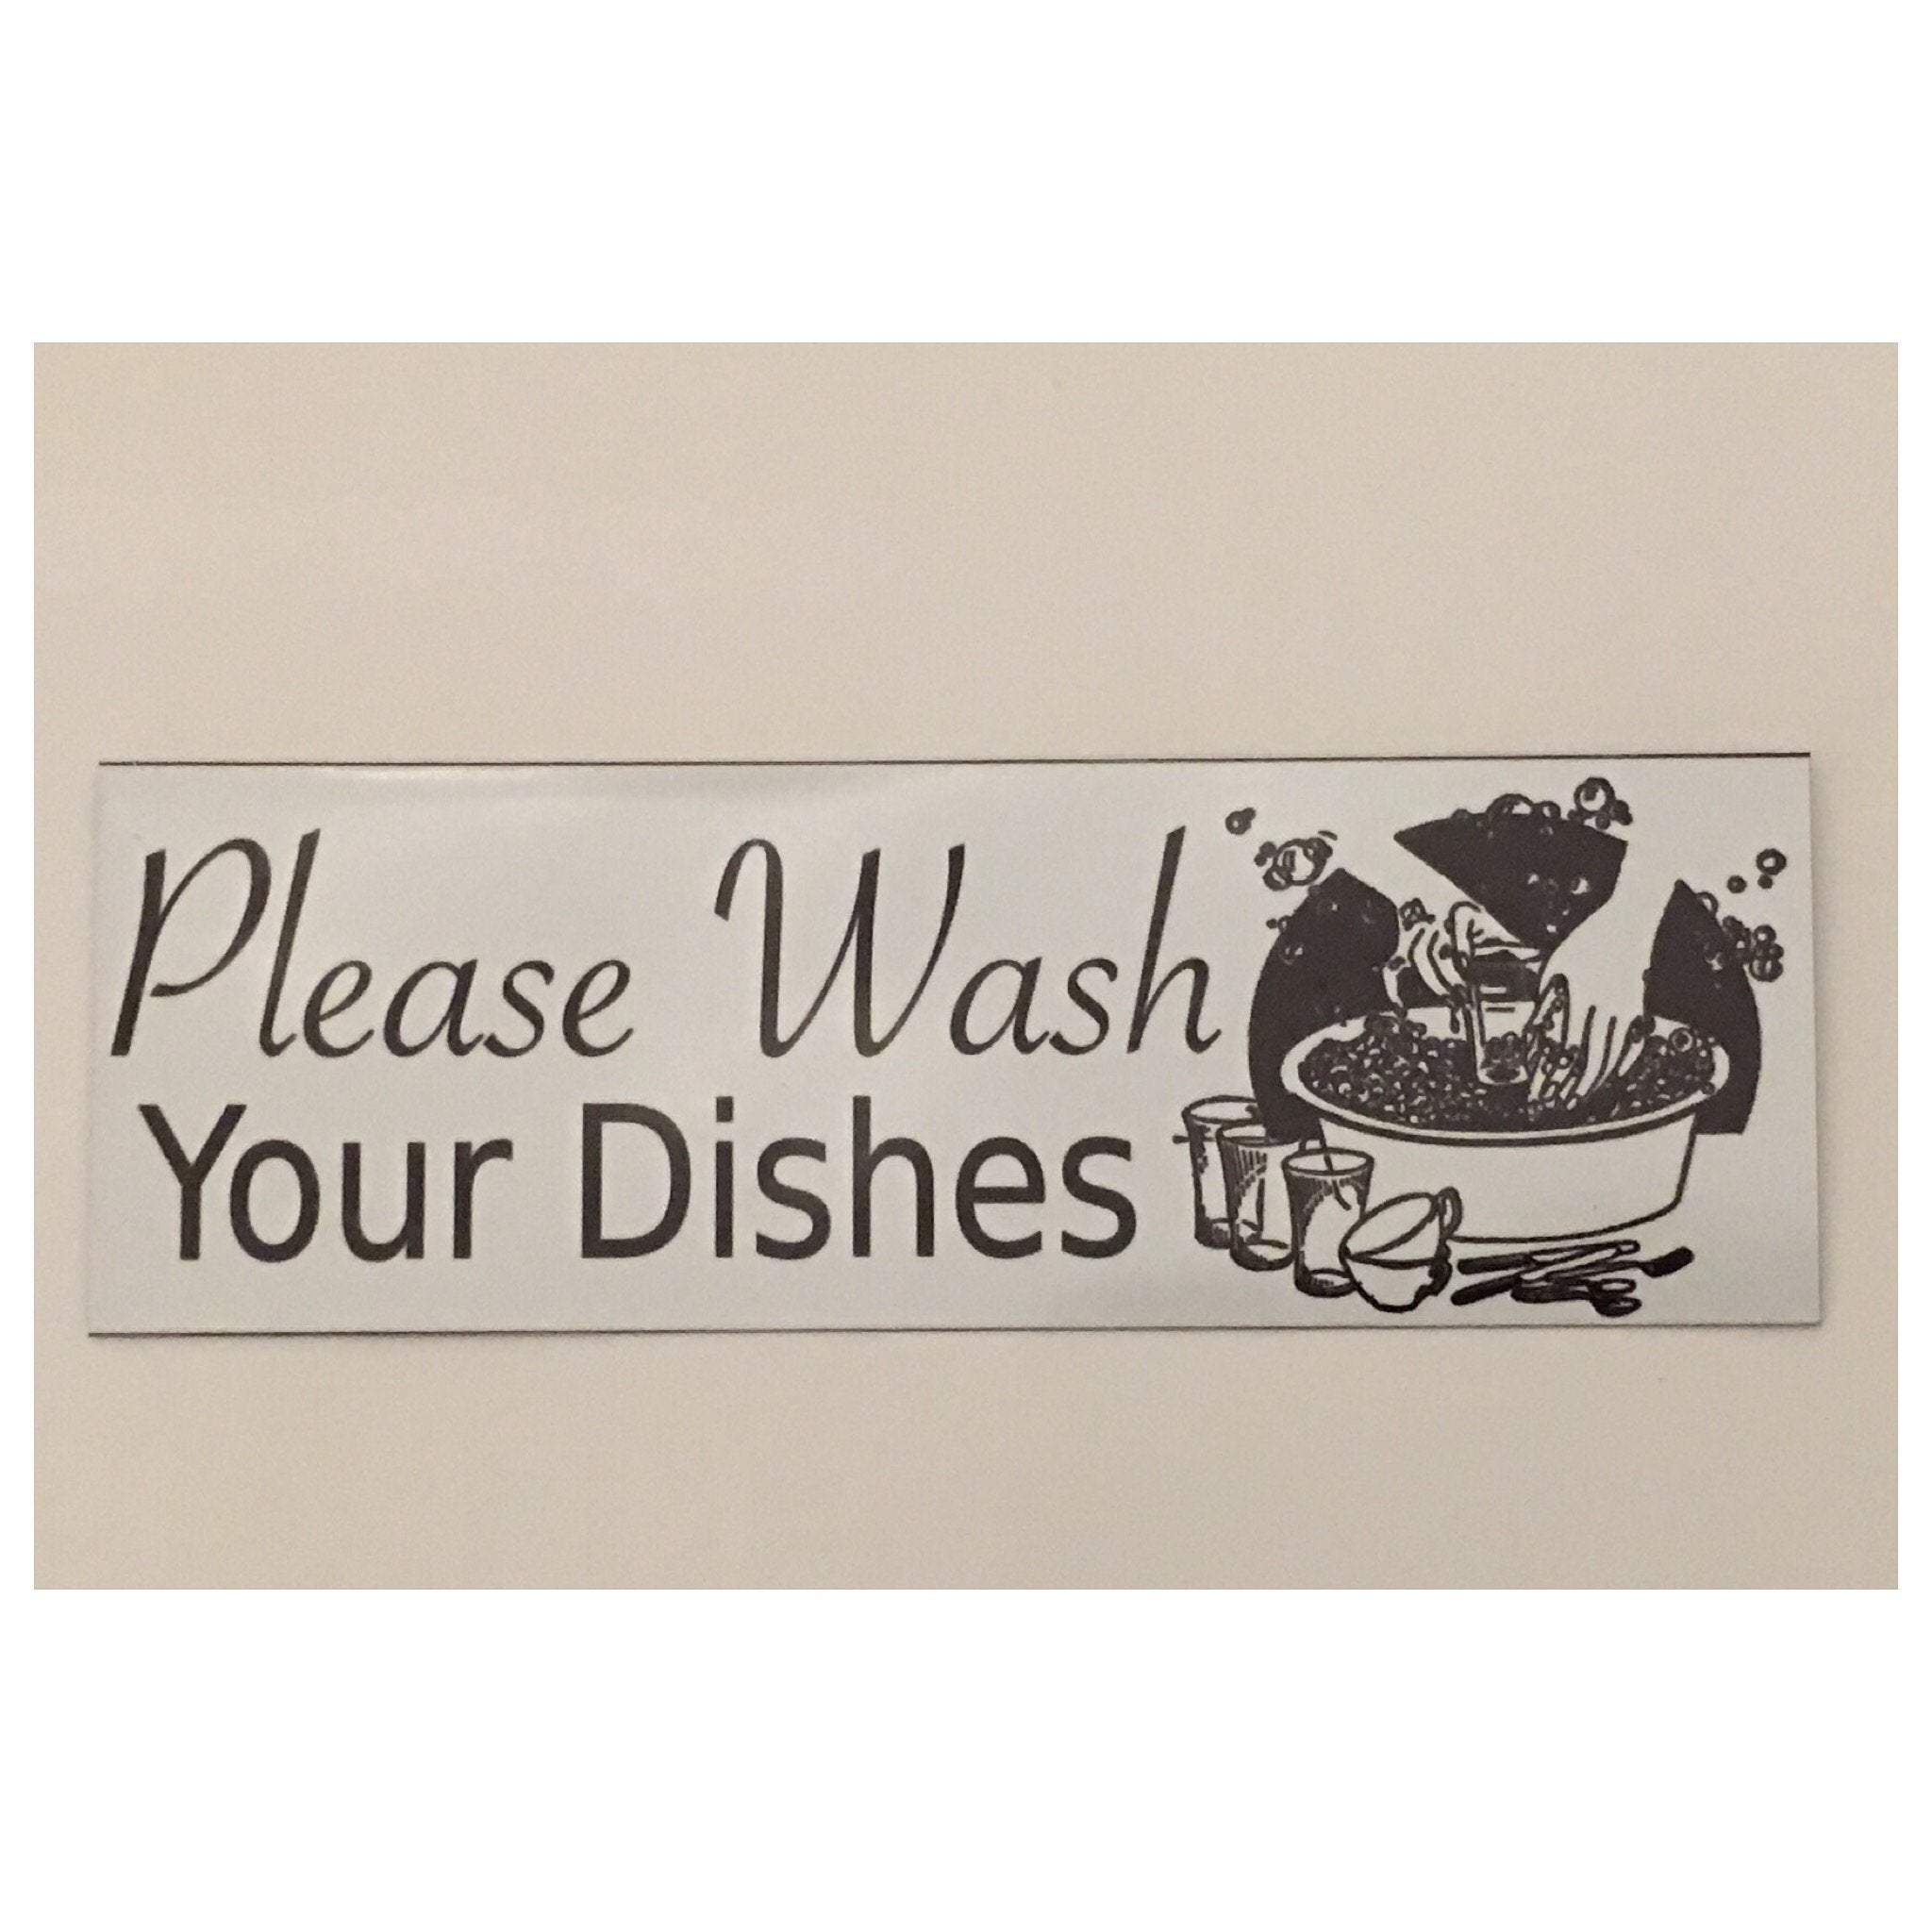 Please Wash Your Dishes Sign - The Renmy Store